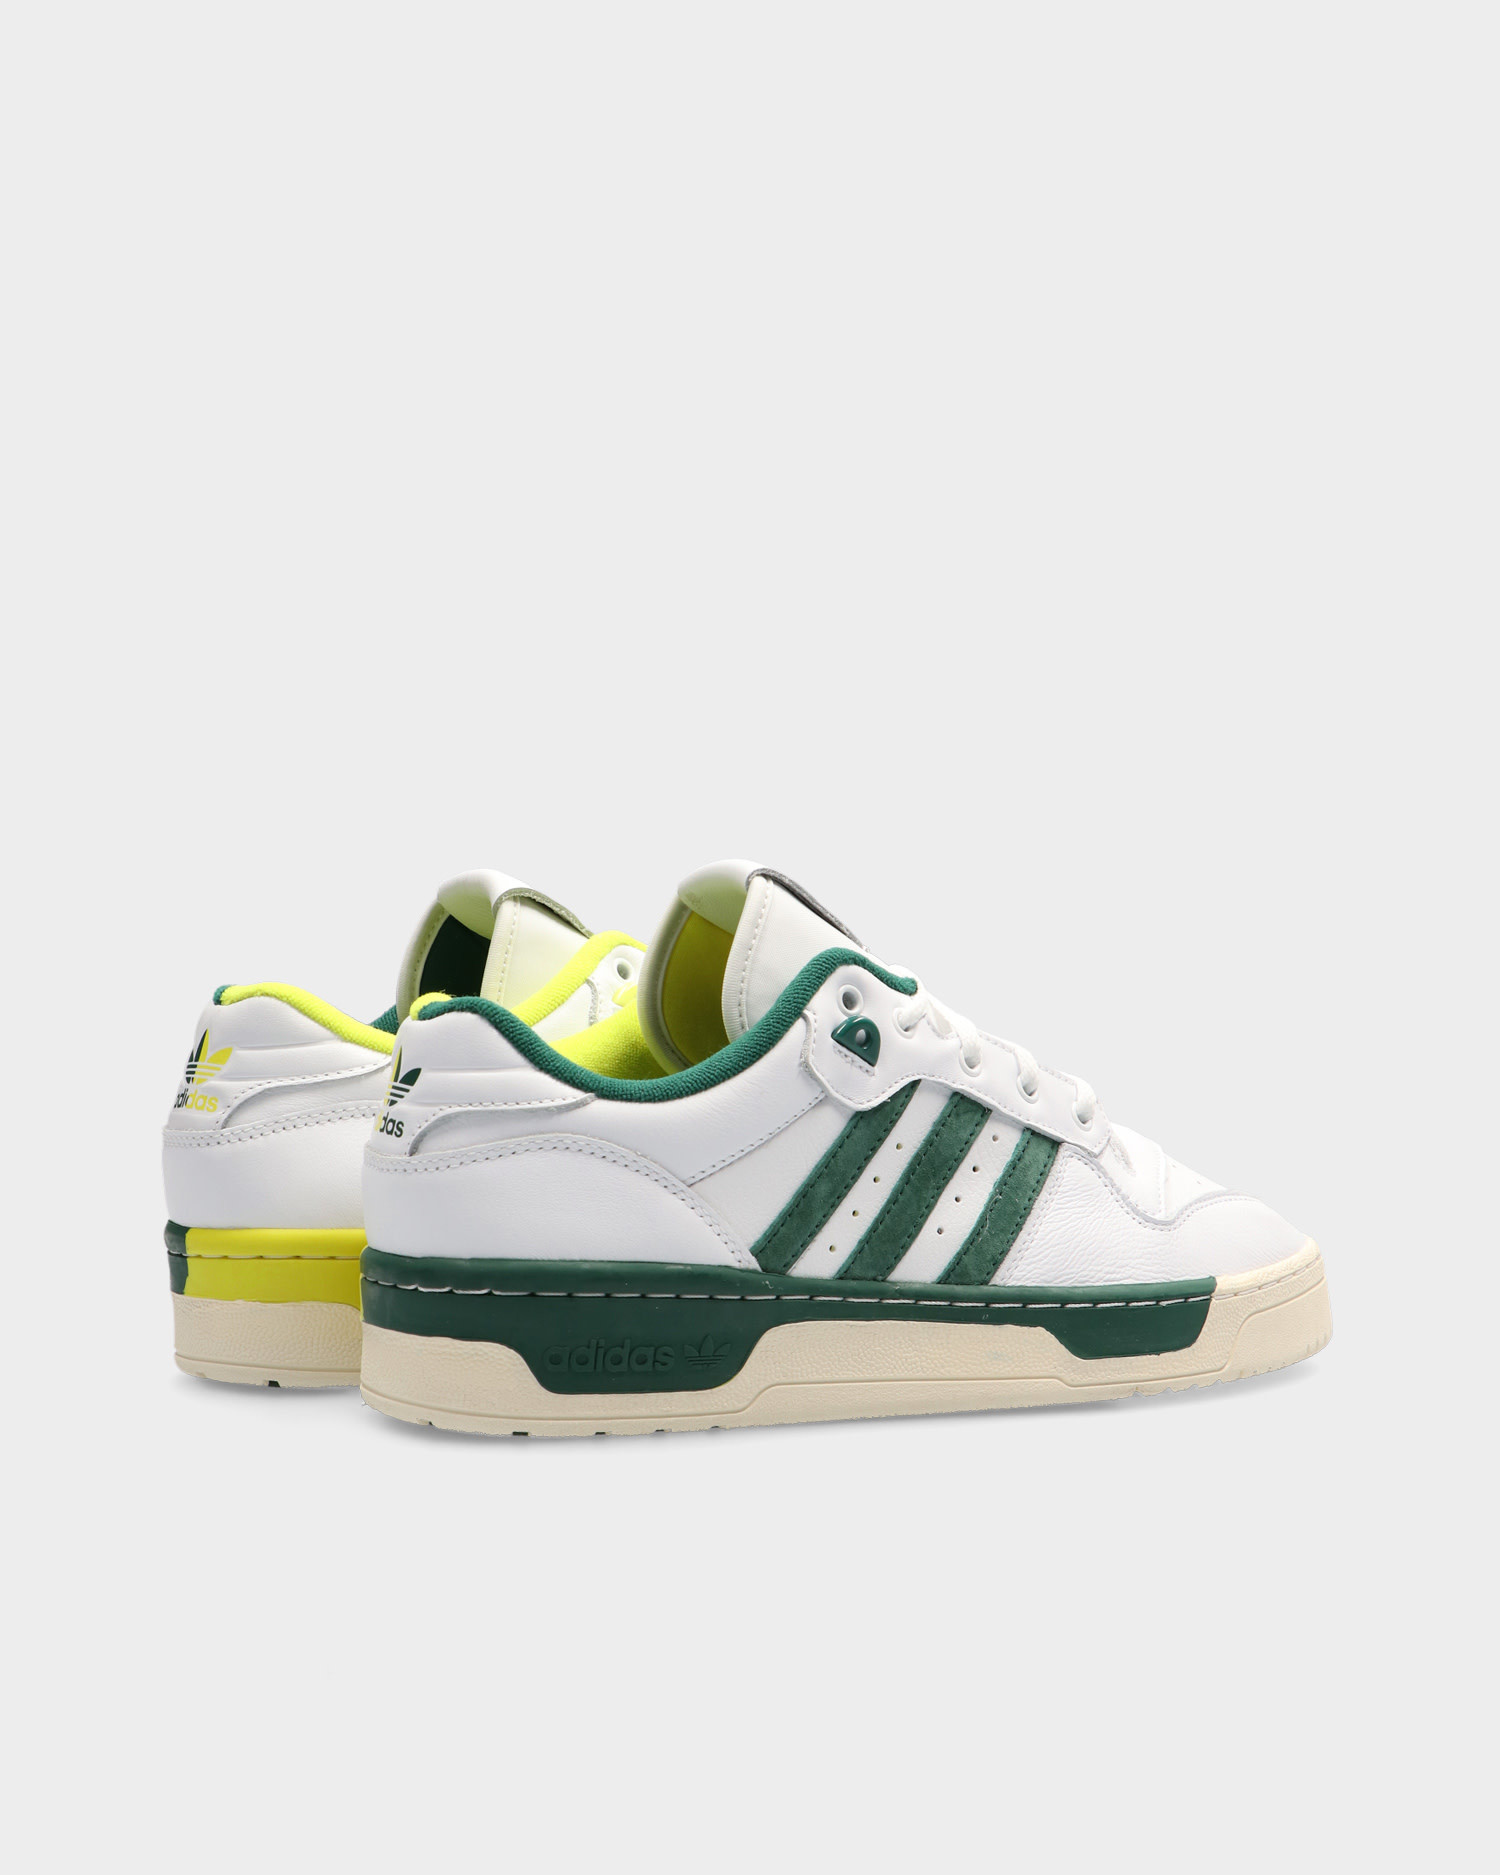 Adidas Rivalry Low Premium Ftwwht/Cwhite/Cgreen